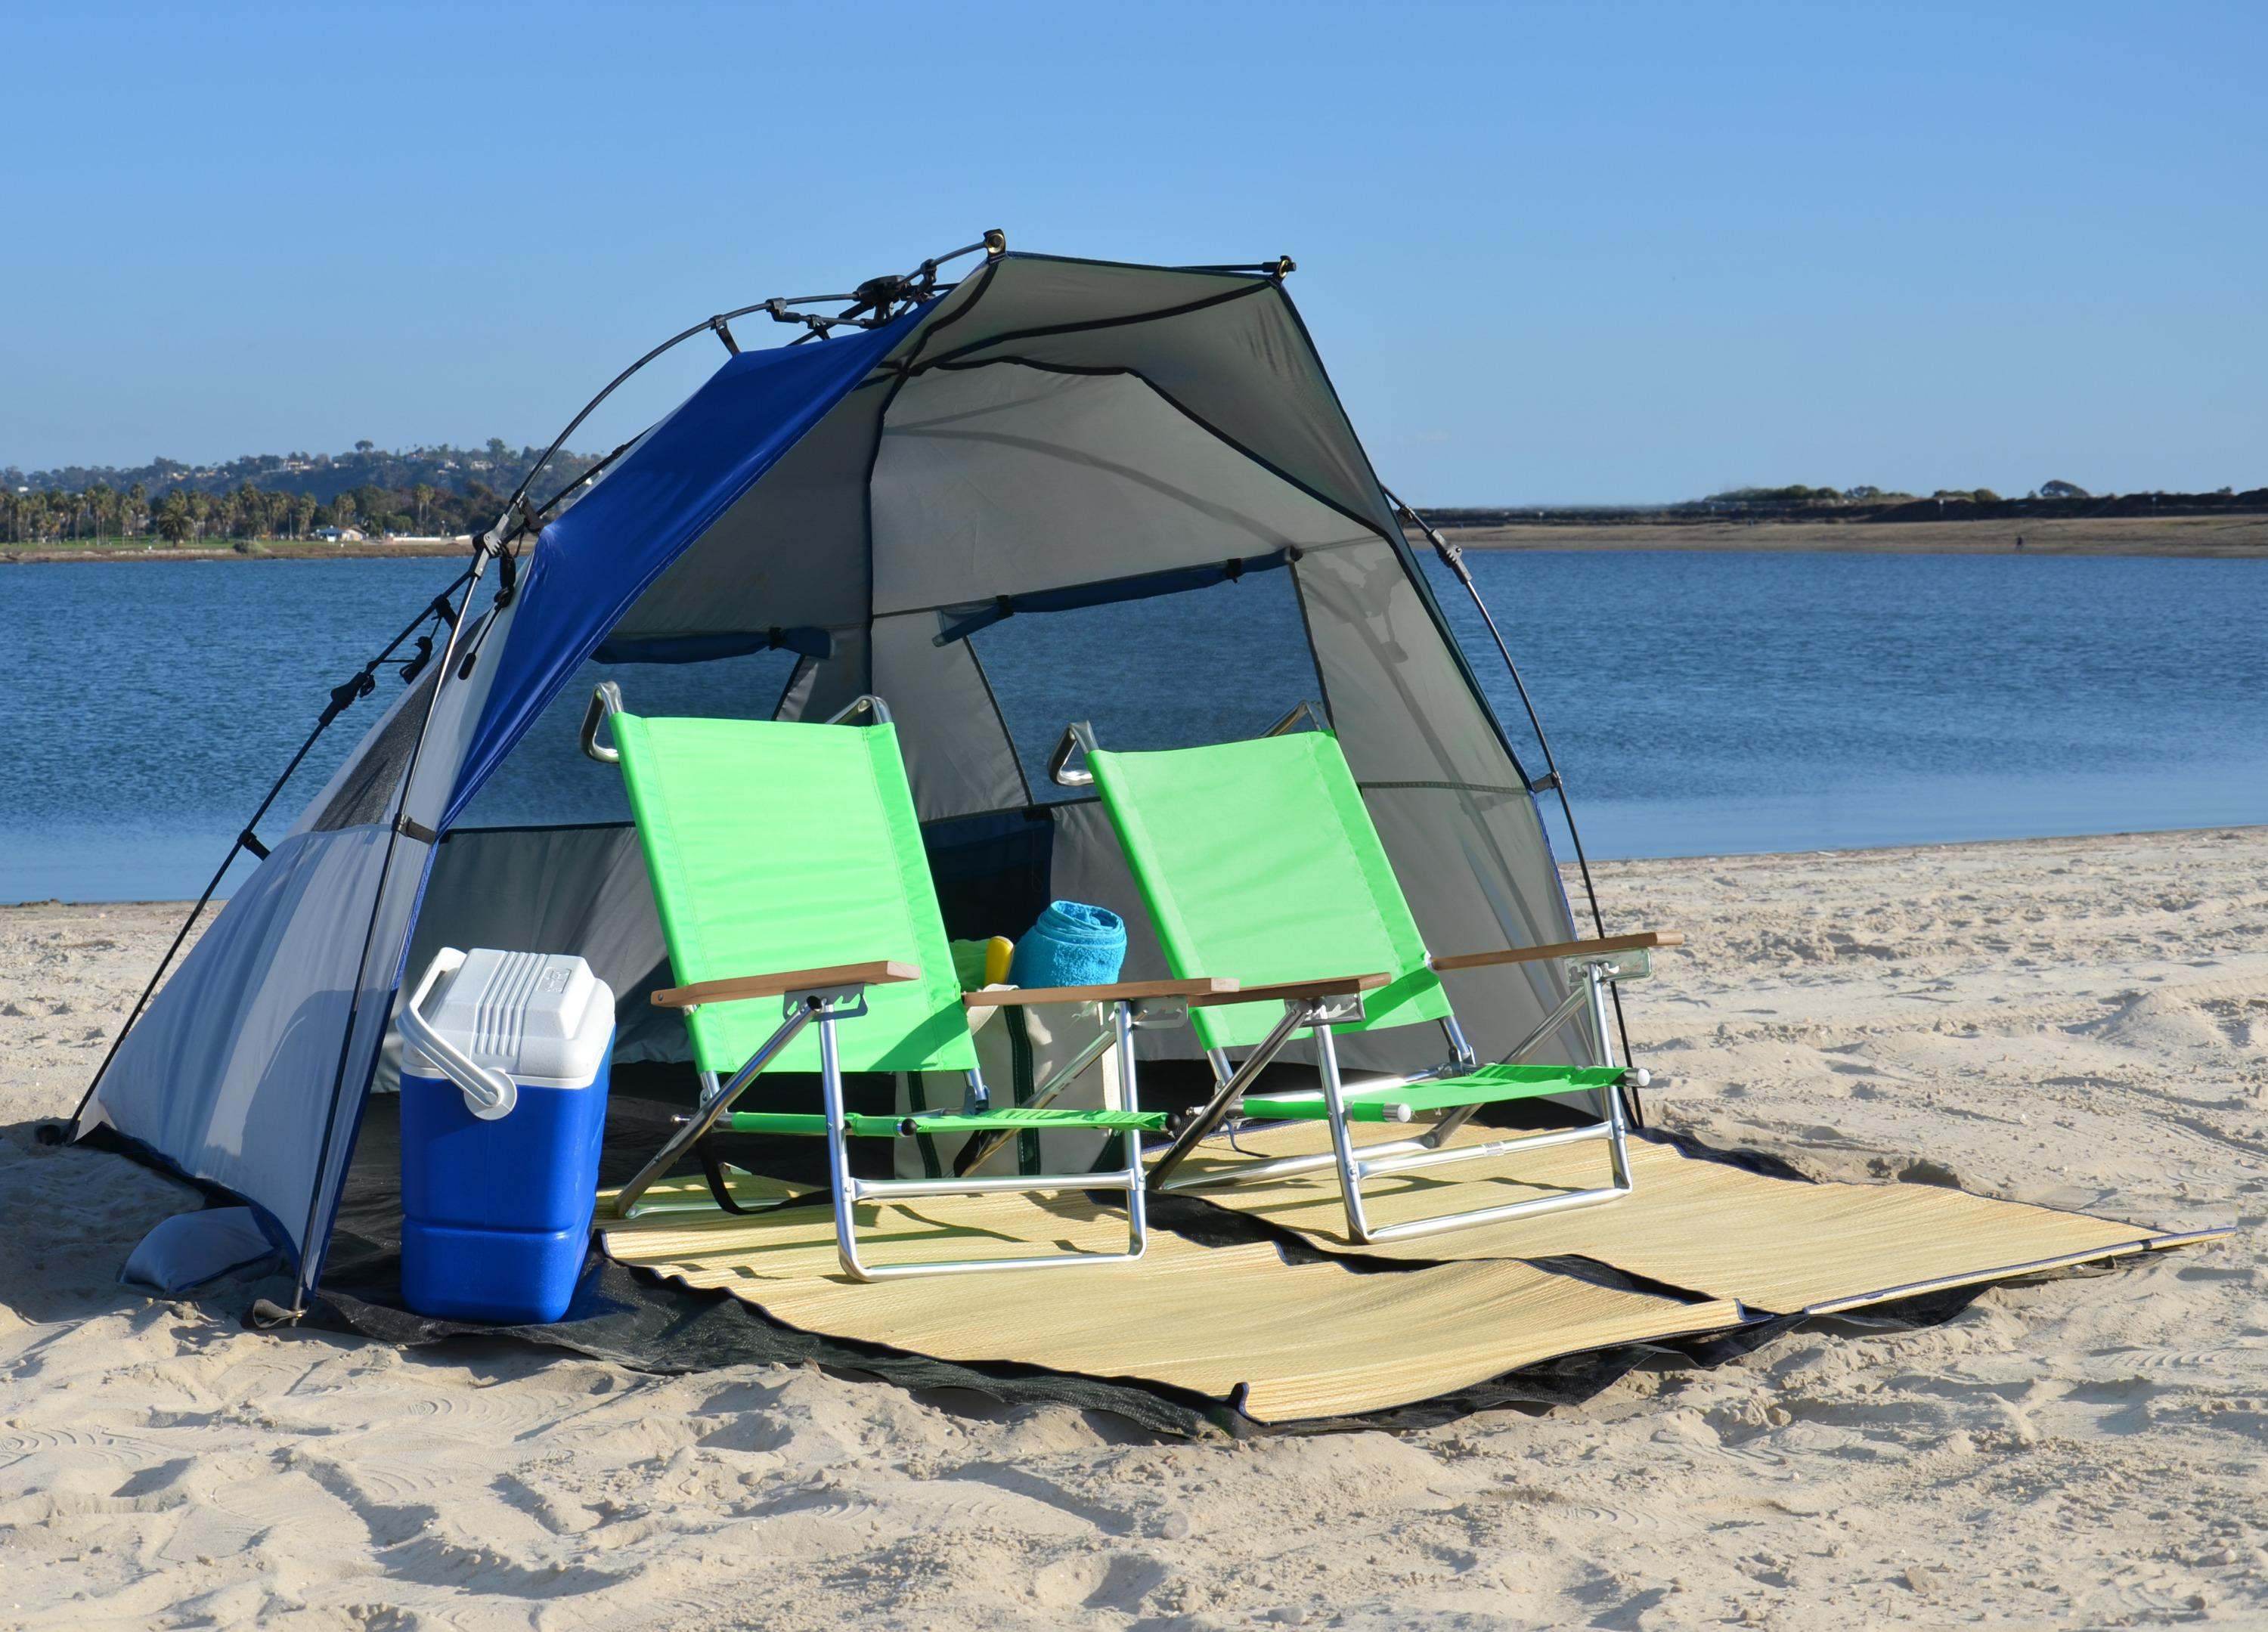 Beach Tents Cabanas : Cabana beach canopy tent pop up sun shelter backyard